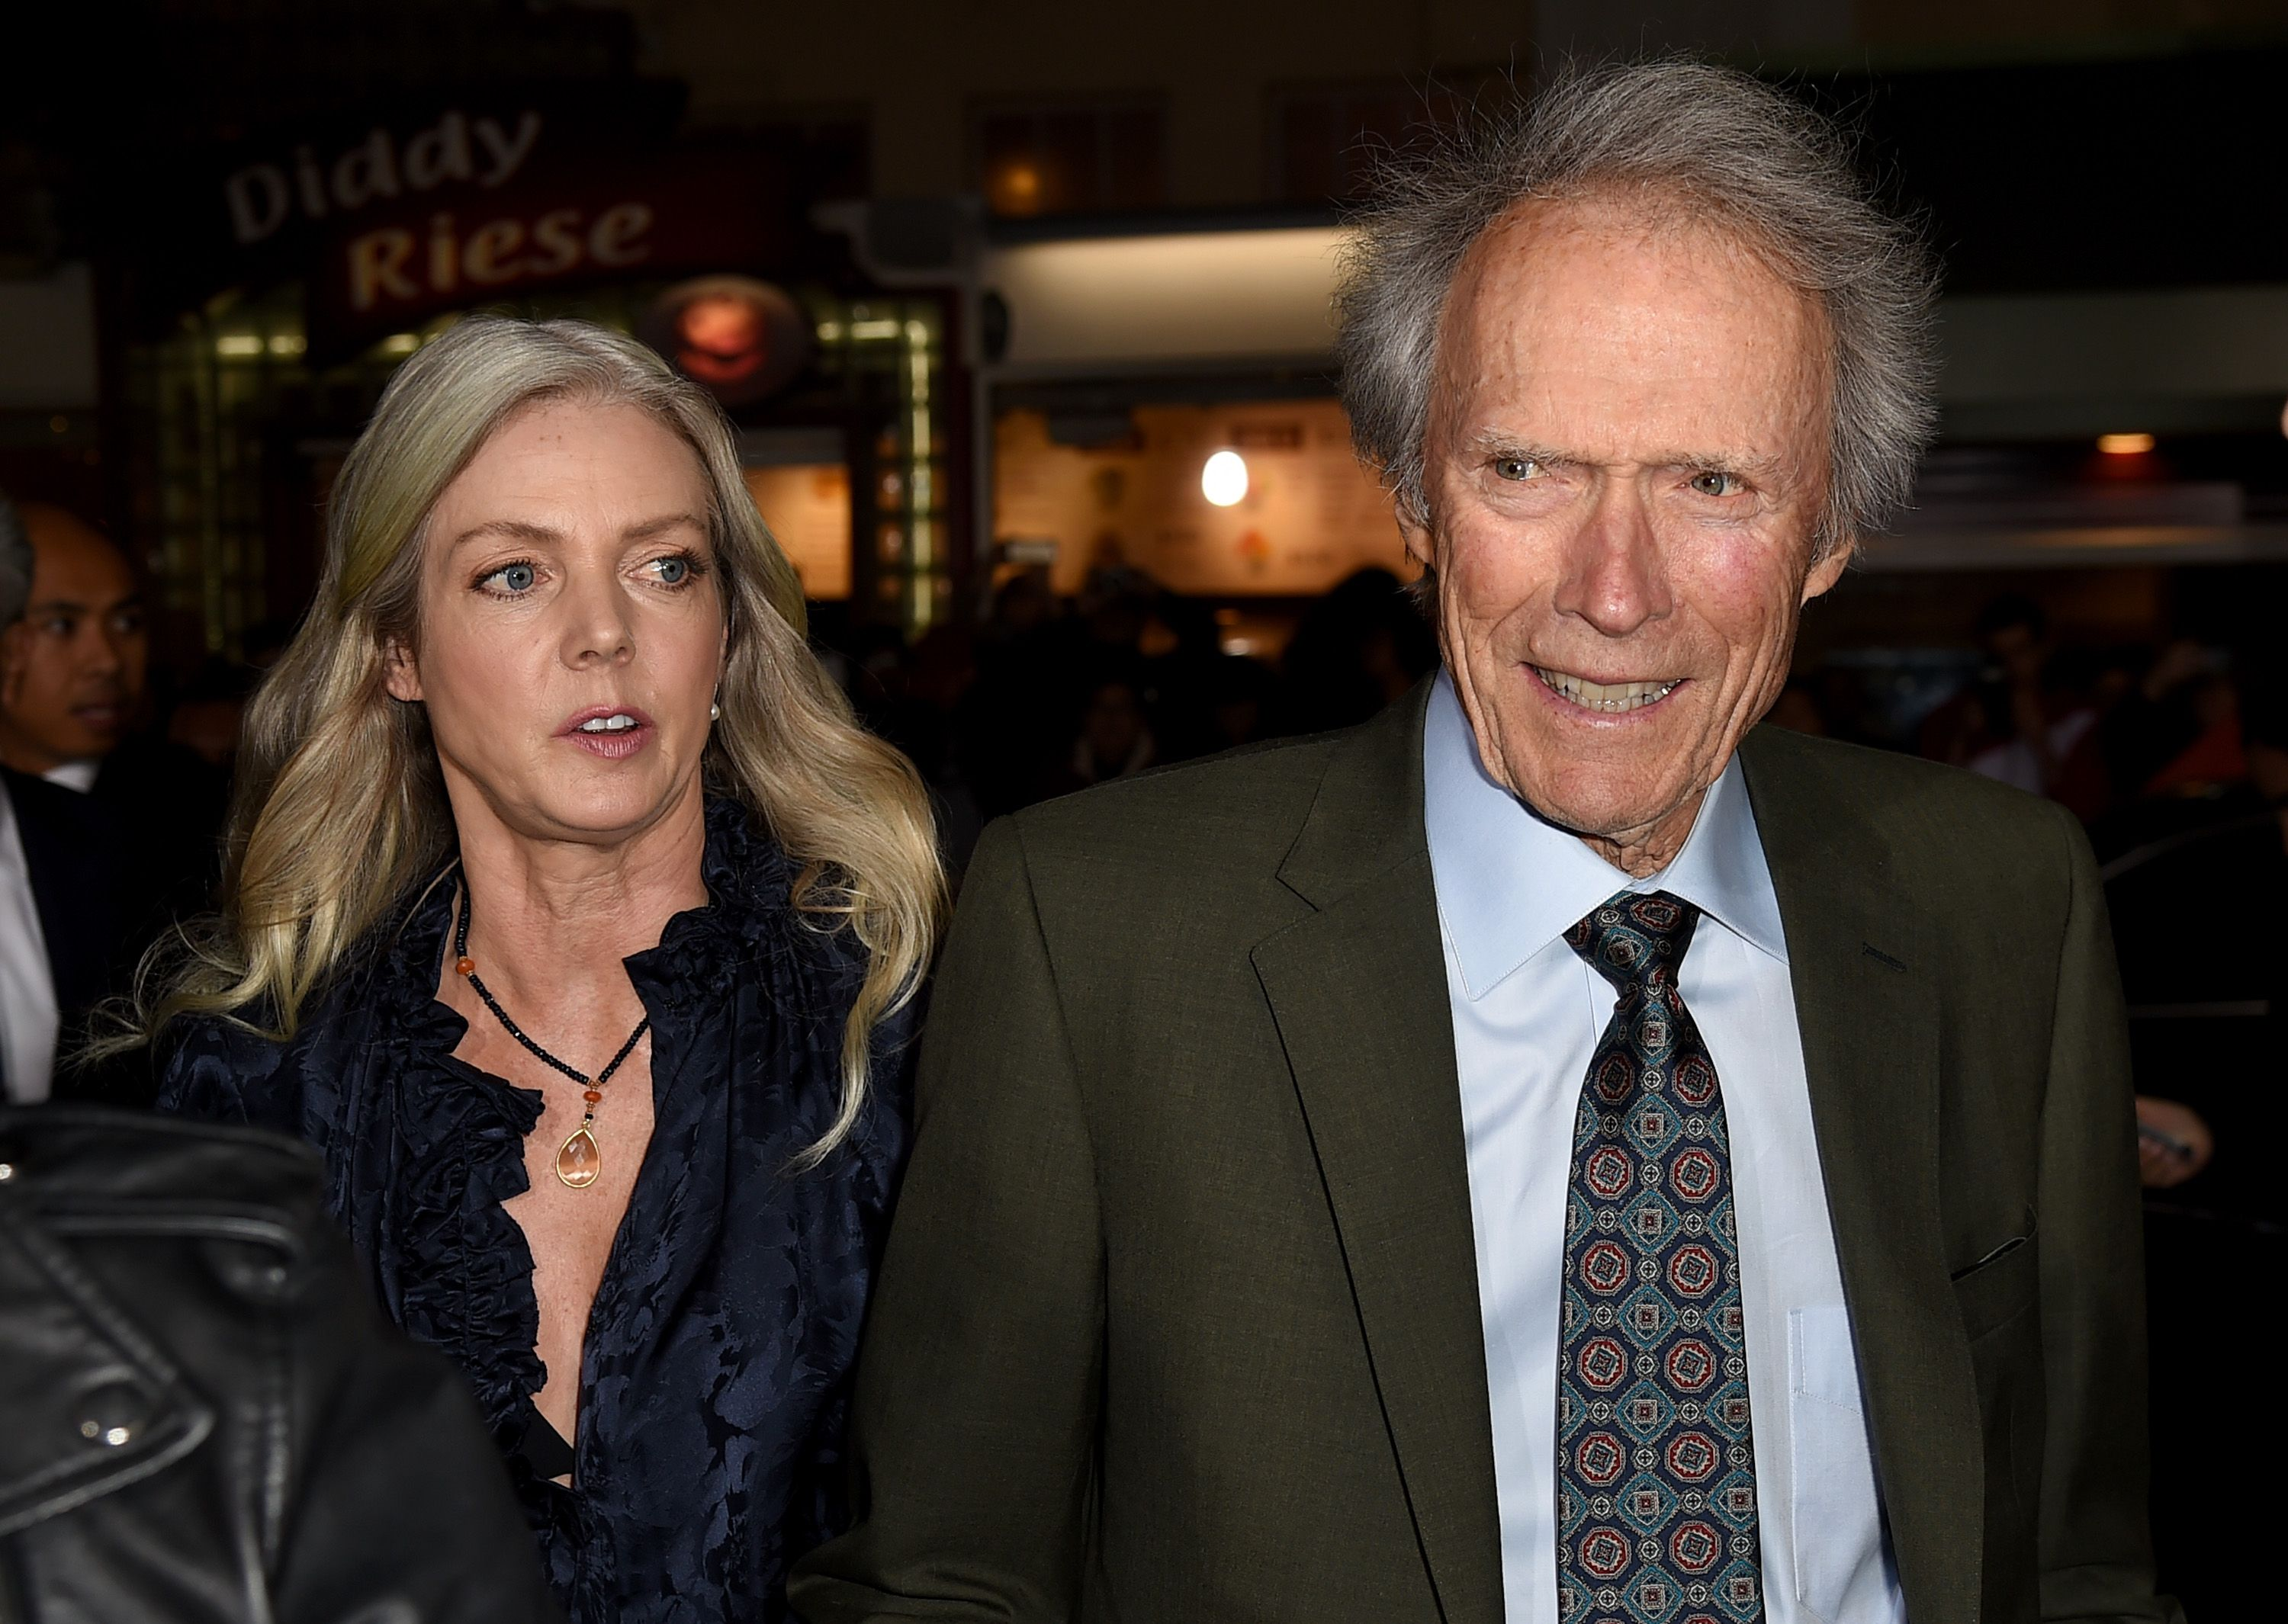 """Christina Sandera (L) and Clint Eastwood arrive at the premiere of Warner Bros. Pictures' """"The Mule"""" at the Village Theatre on December 10, 2018 